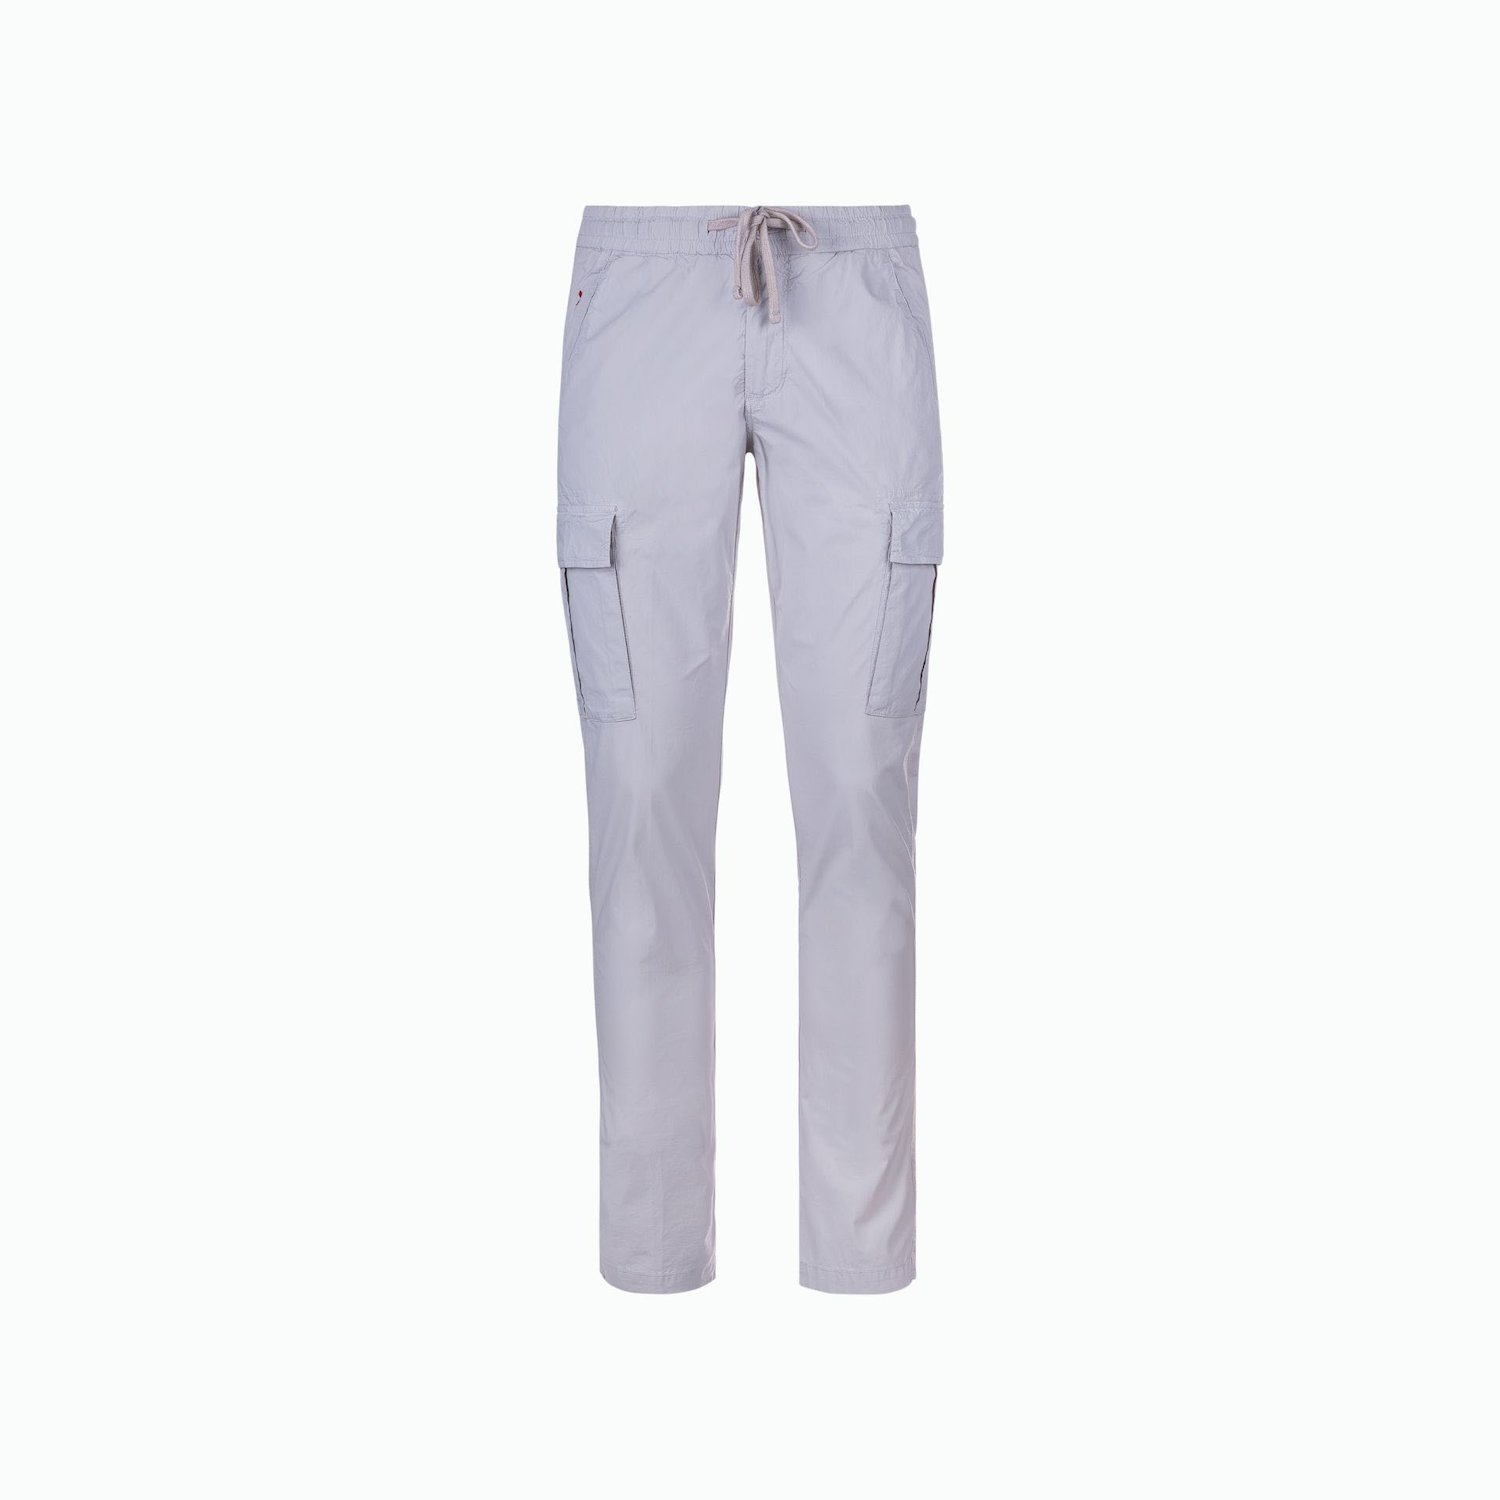 A77 Trousers - Fog Grey